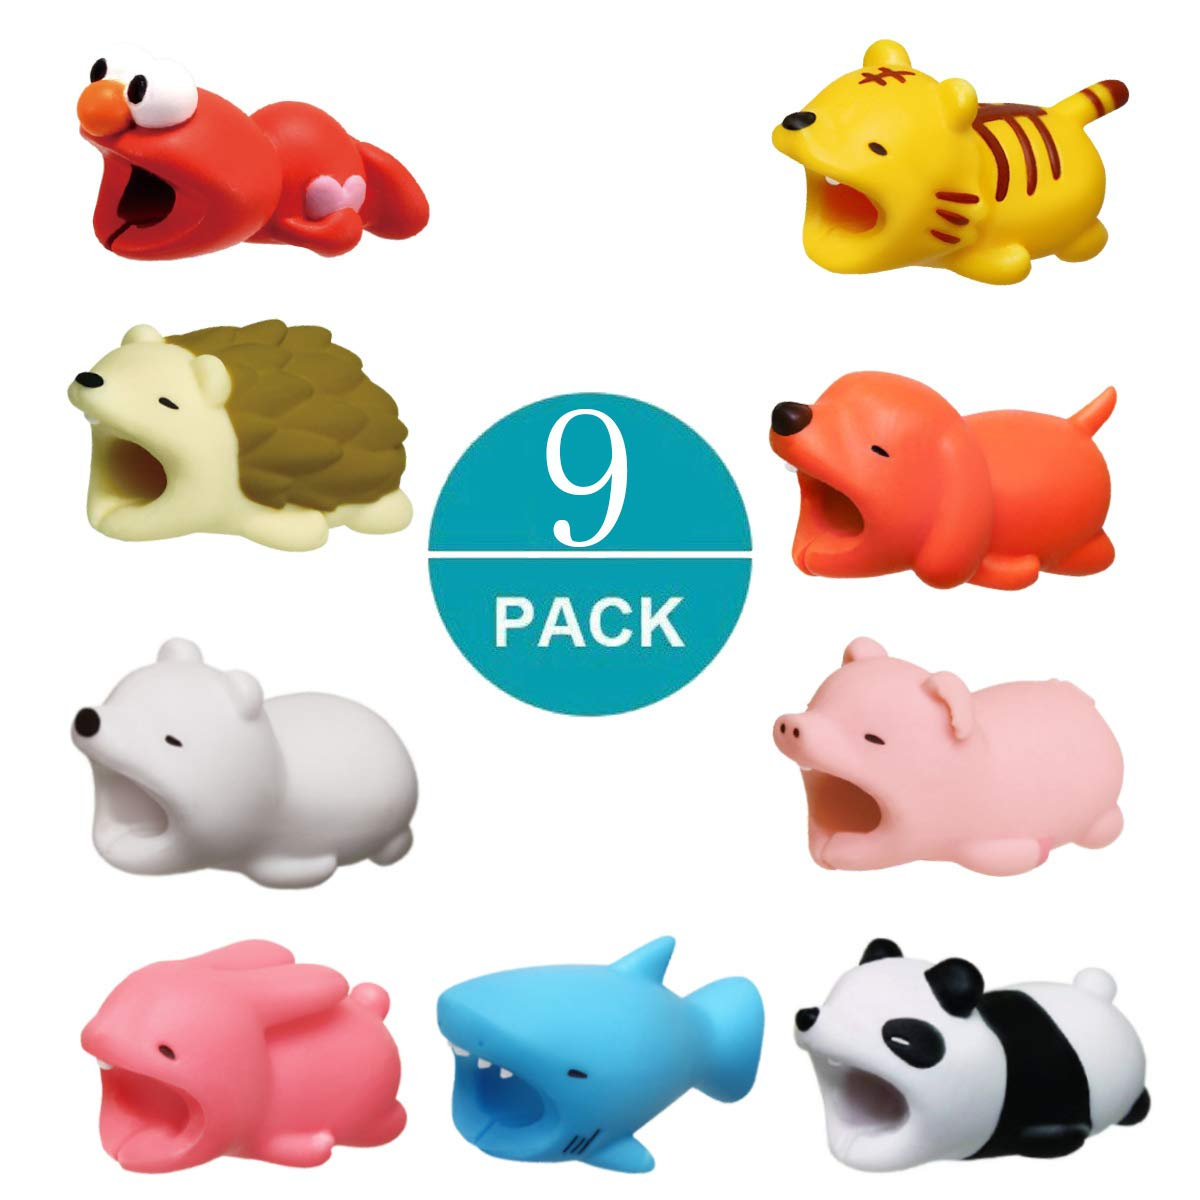 Newseego Compatible iPhone Cable Protector Charger Saver Cable Chewers Cable Cute Animal Bite Cable Accessory-9 Pack